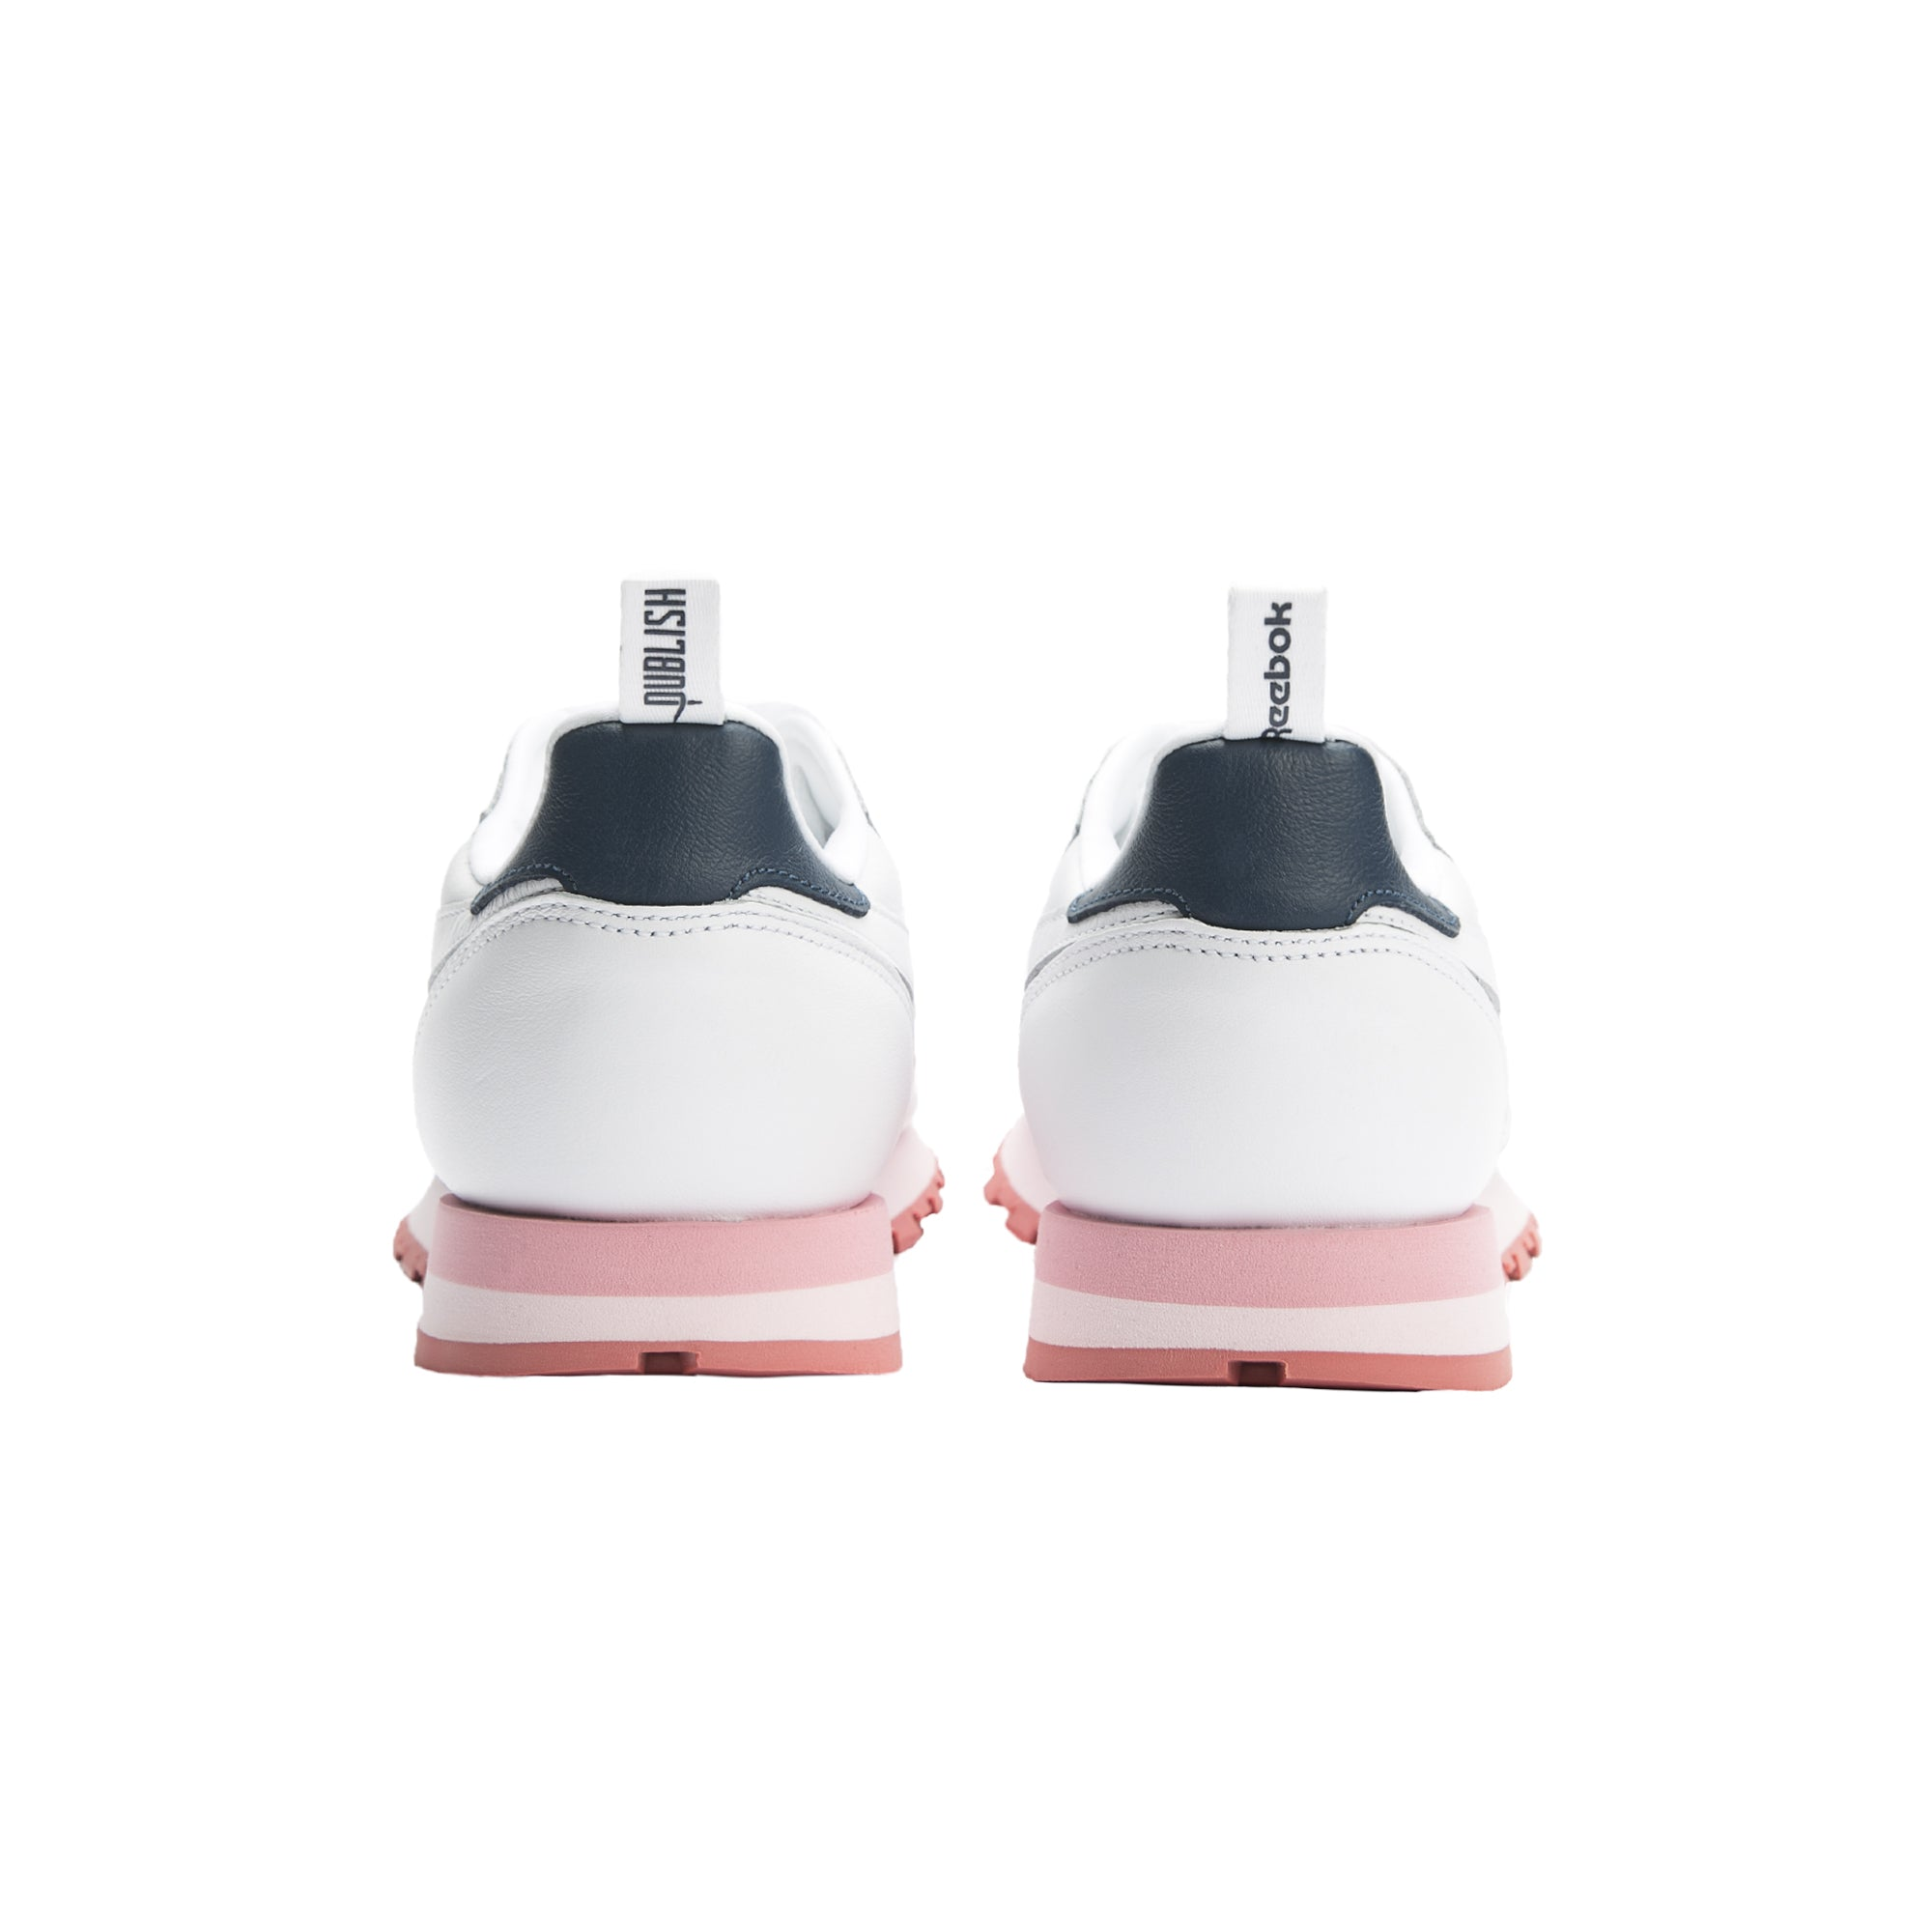 Reebok CL Leather - White/Steel/Porcelian Pink